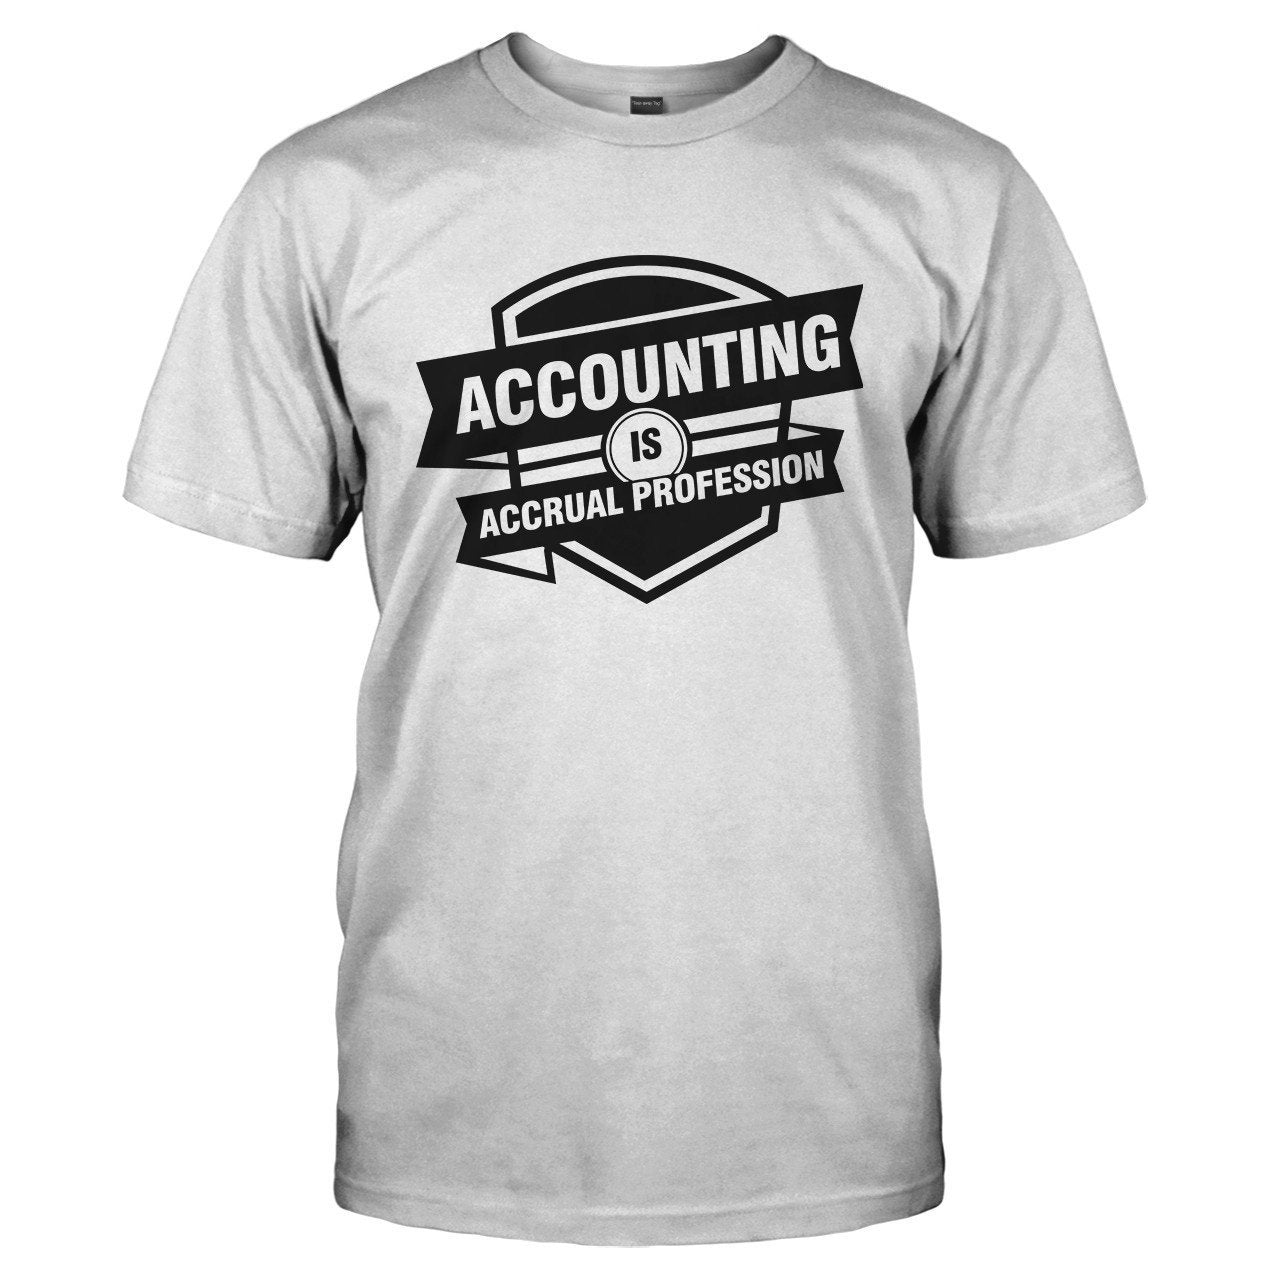 Accounting Is Accrual Profession - T Shirt